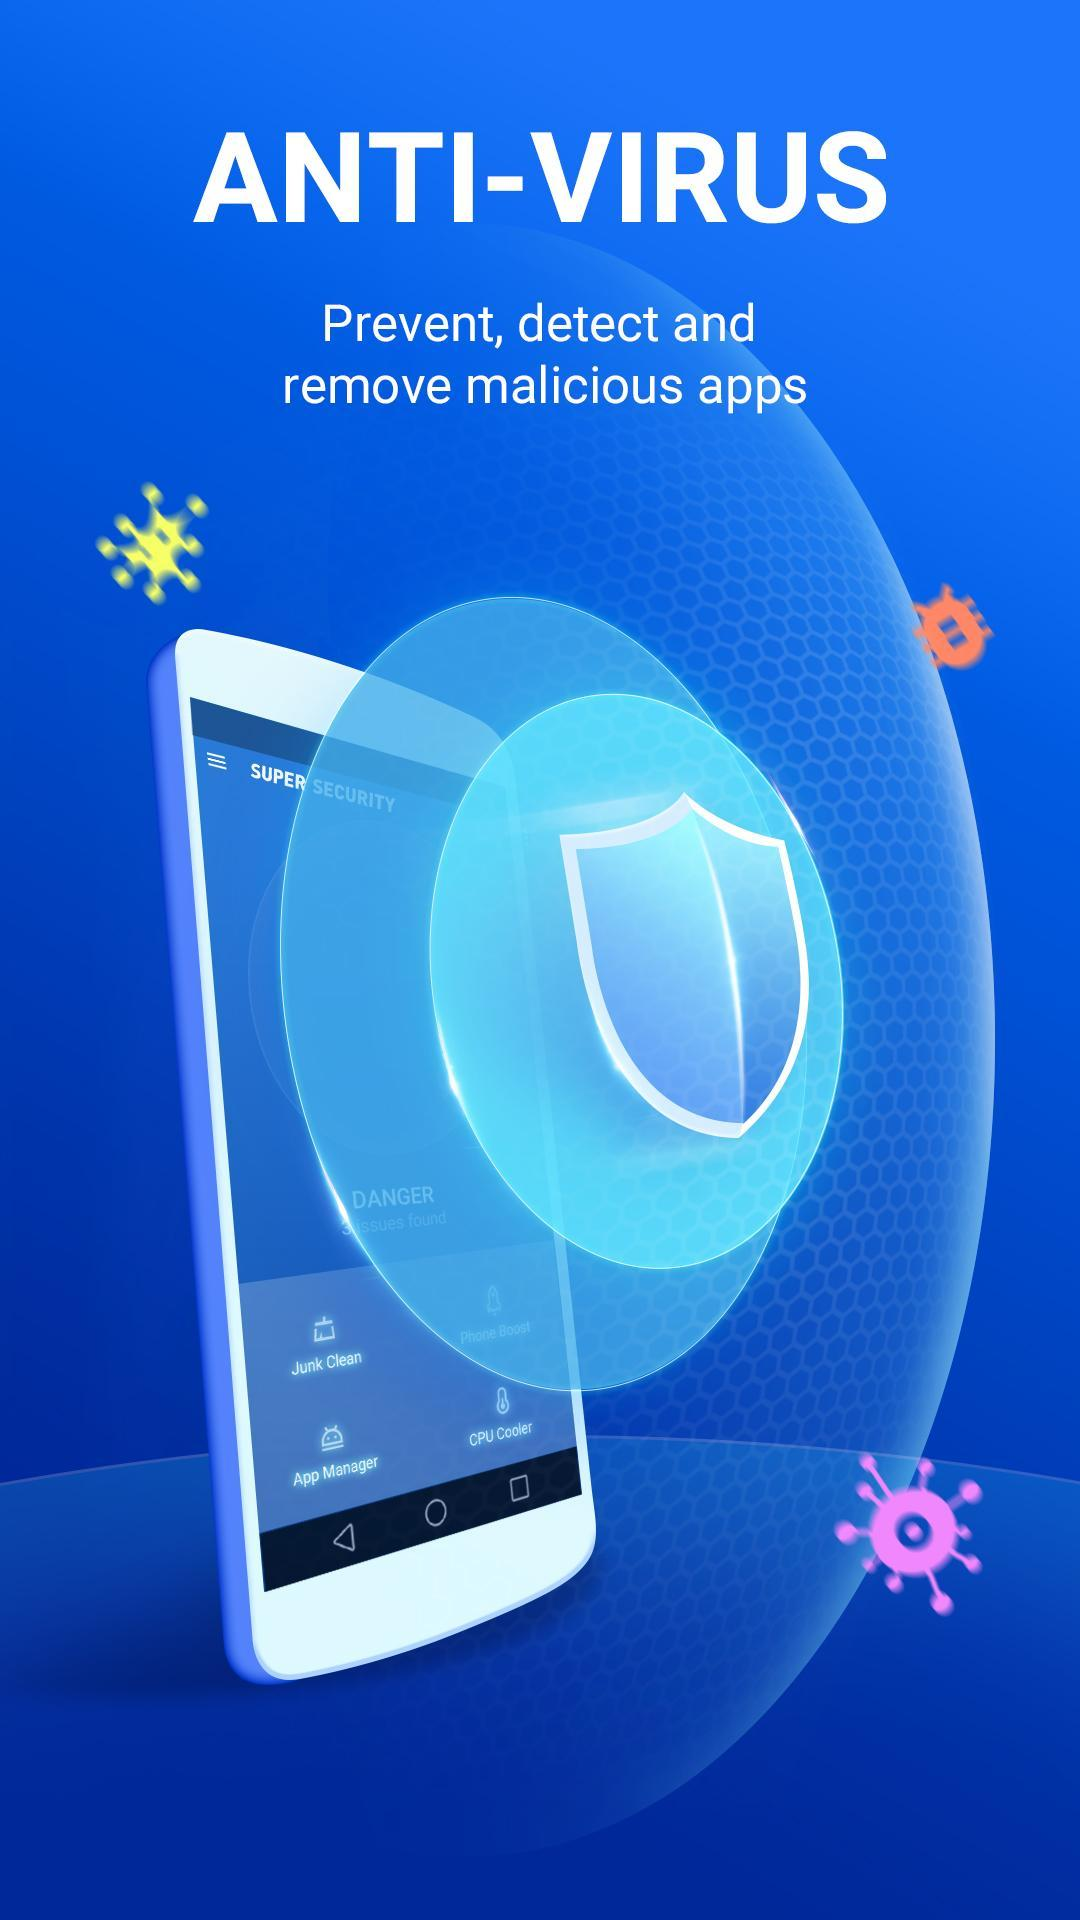 Antivirus - Virus Scanner & Remover for Android - APK Download